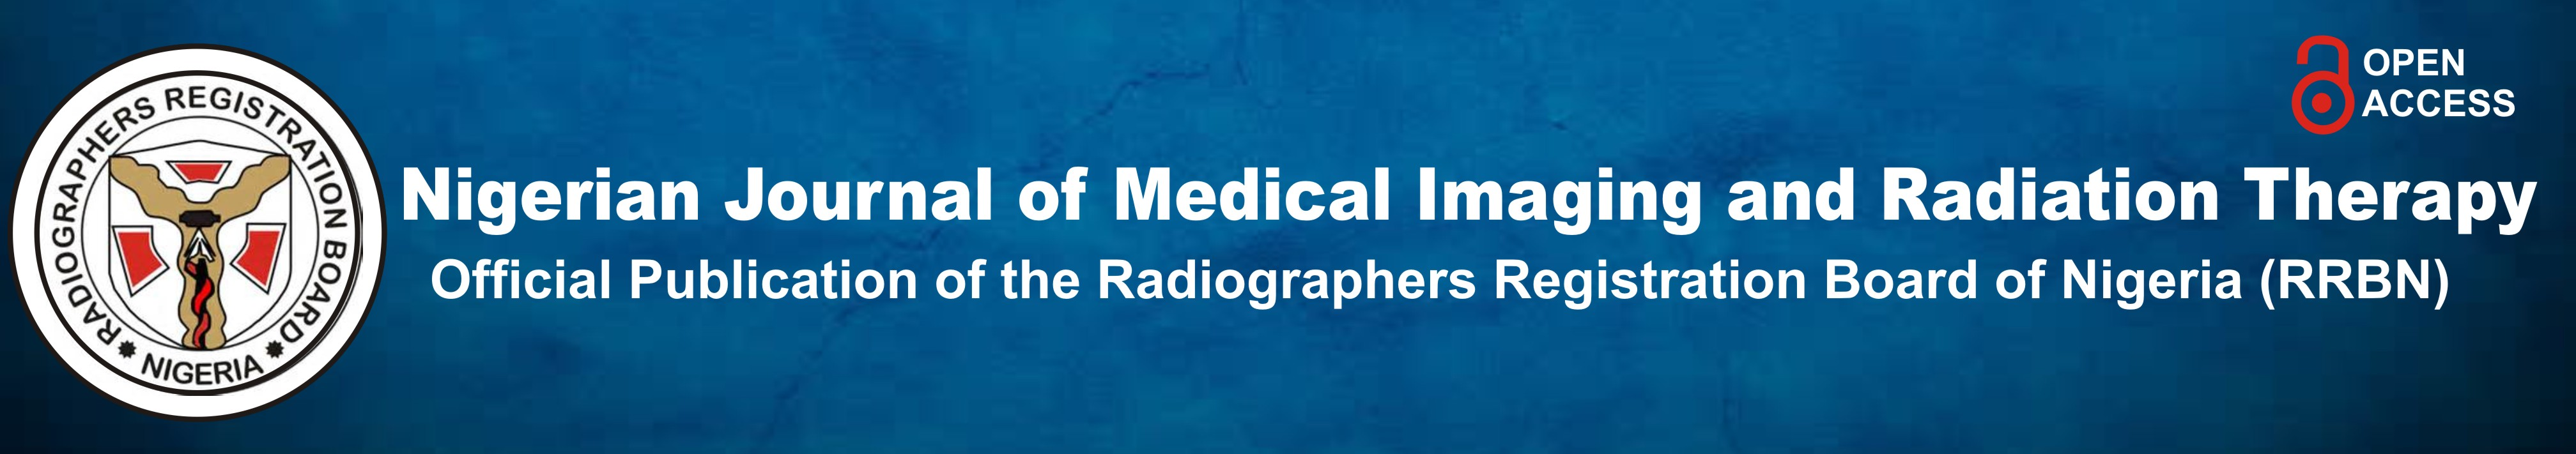 Nigerian Journal of Medical Imaging and Radiation Therapy